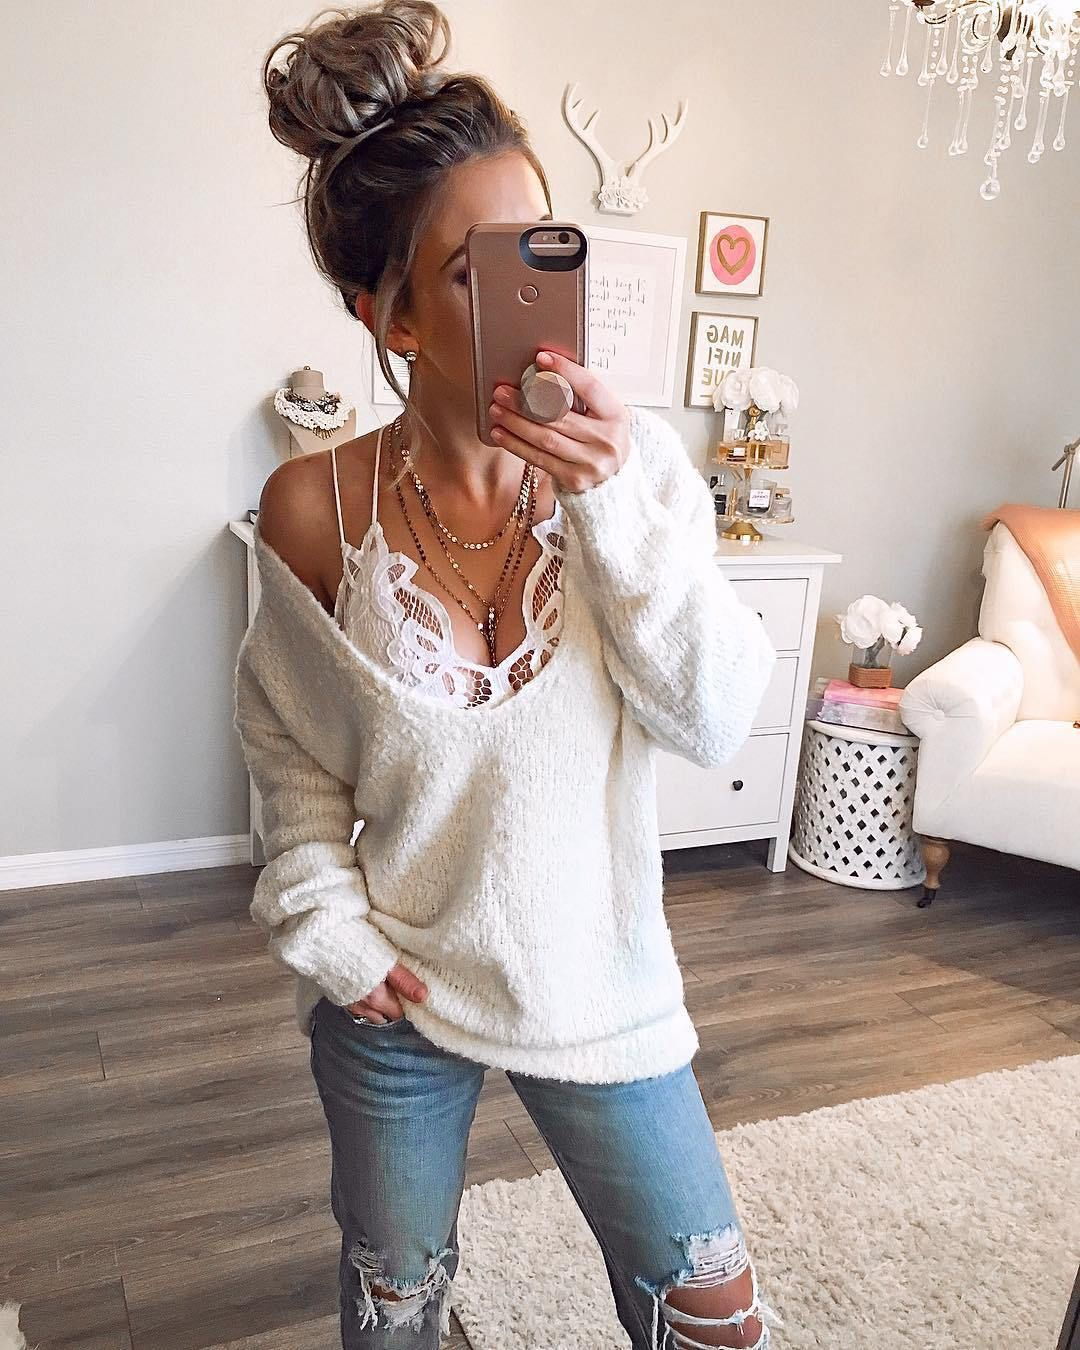 I Bought This Outfit It Looks Amazing On: 25 Most Amazing Weekend Looks That Will Make You Look